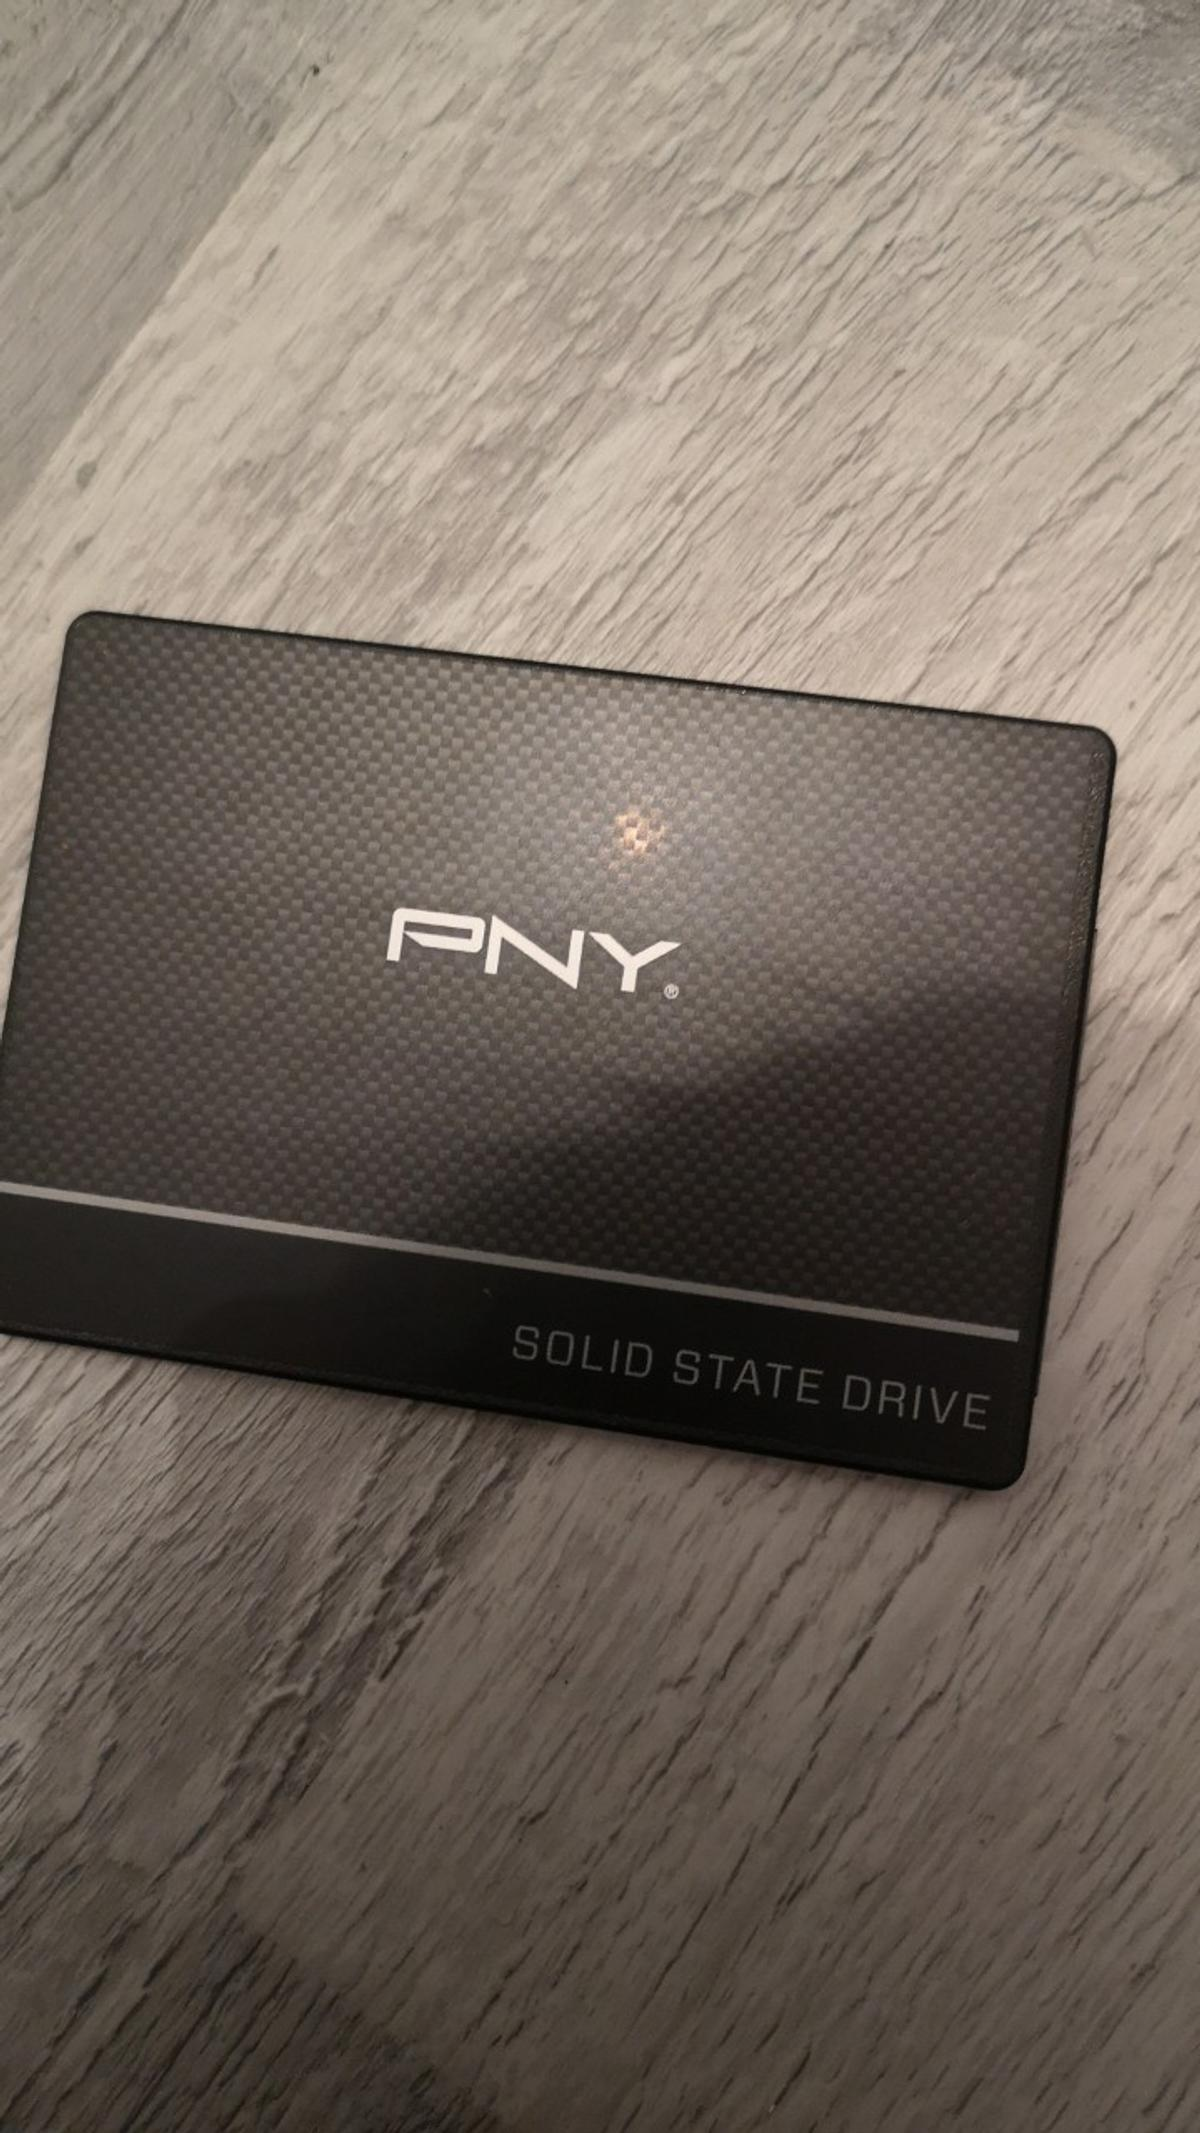 Solid state drive 6gb